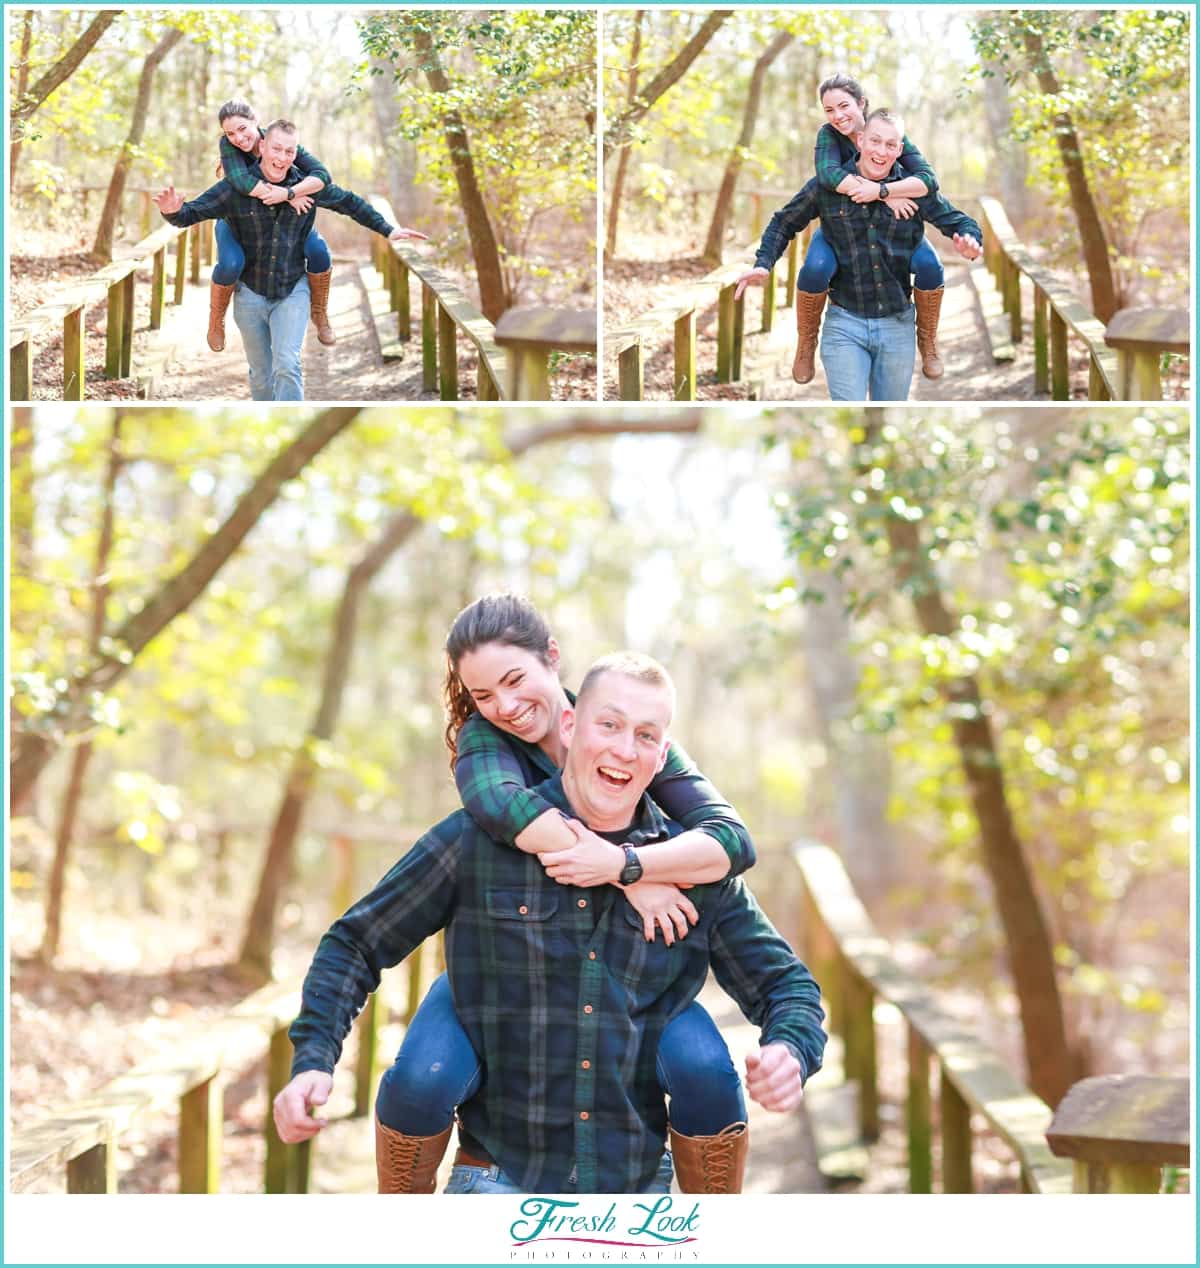 being goofy at the engagement session